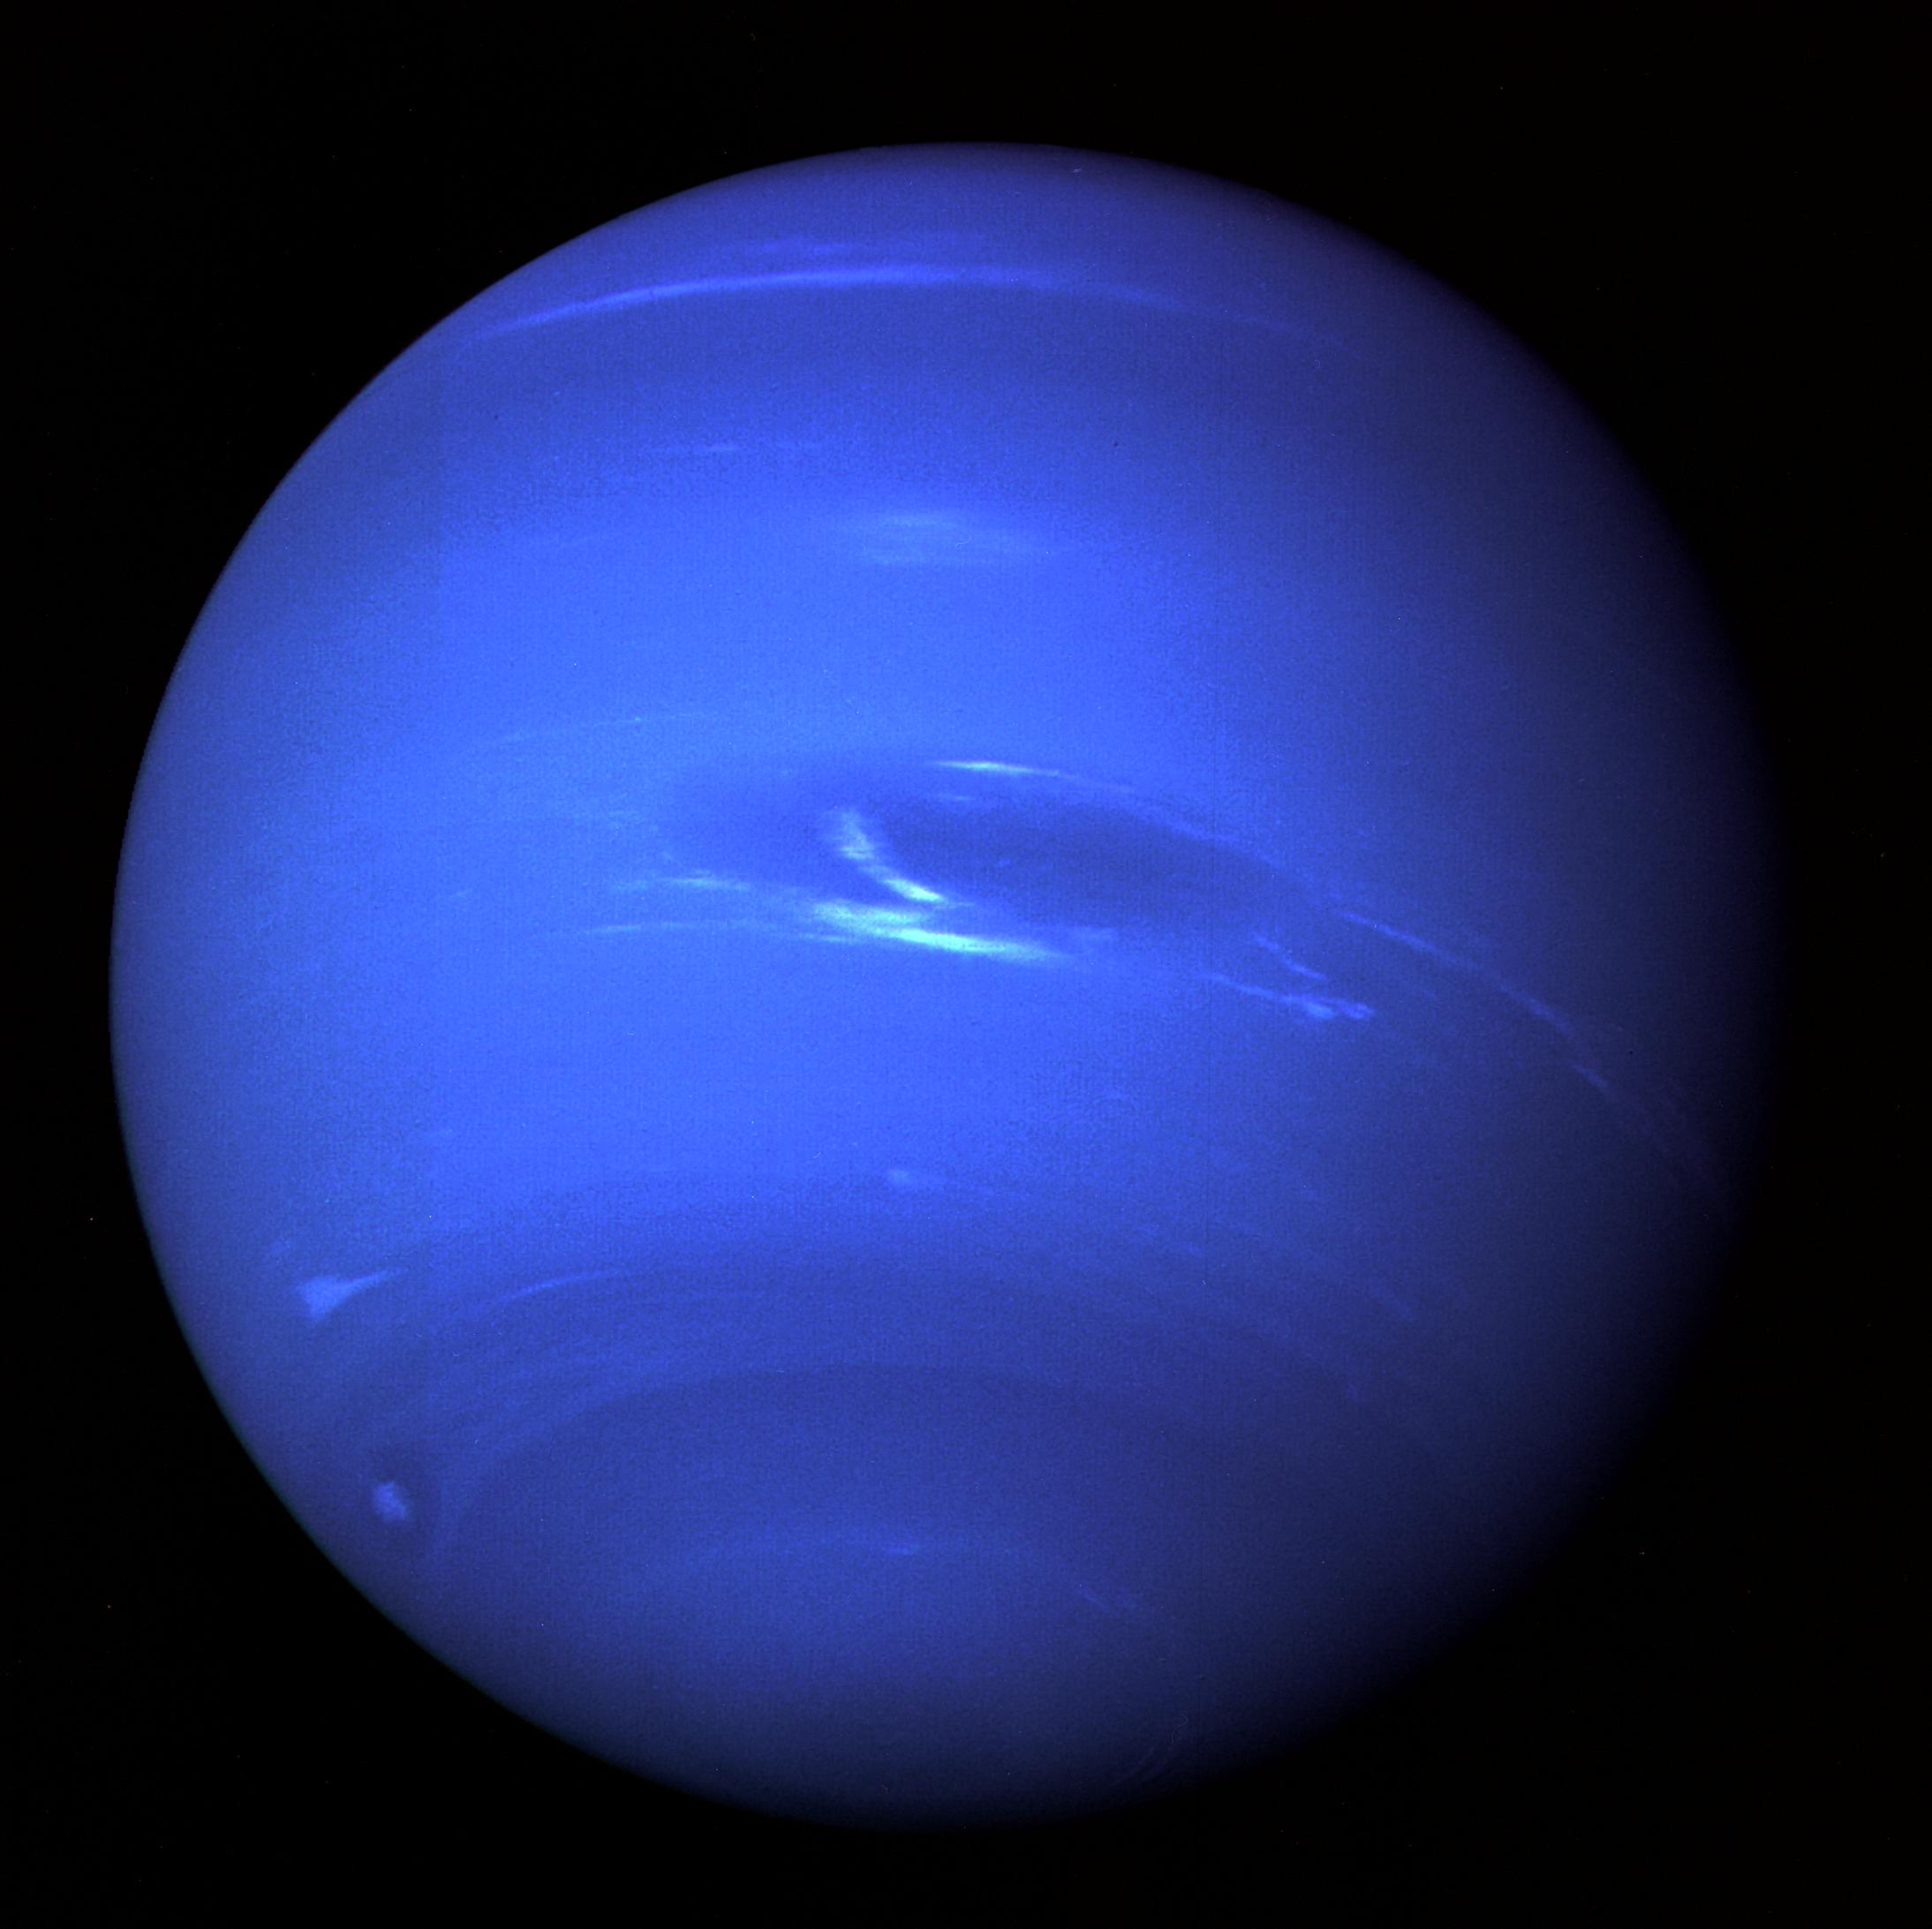 16. Neptune radiates more heat than it gets from the sun